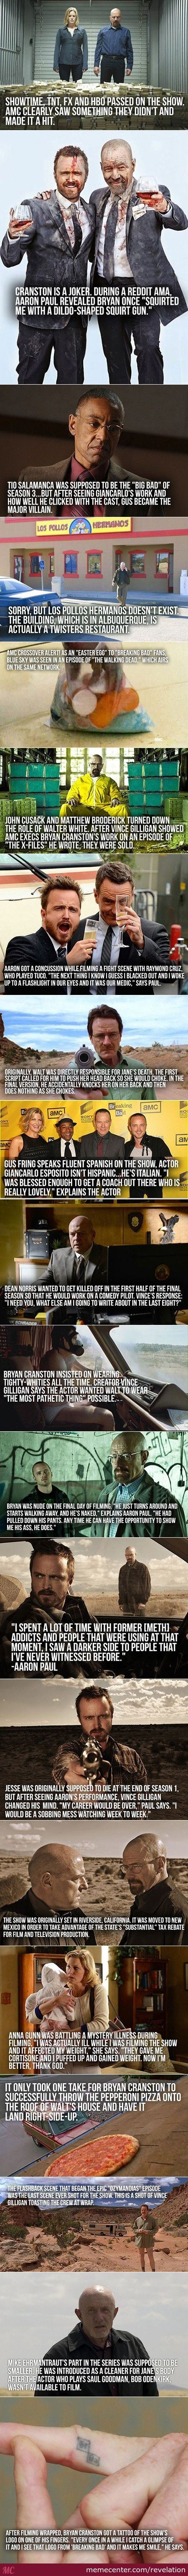 Breaking Bad Interesting Facts